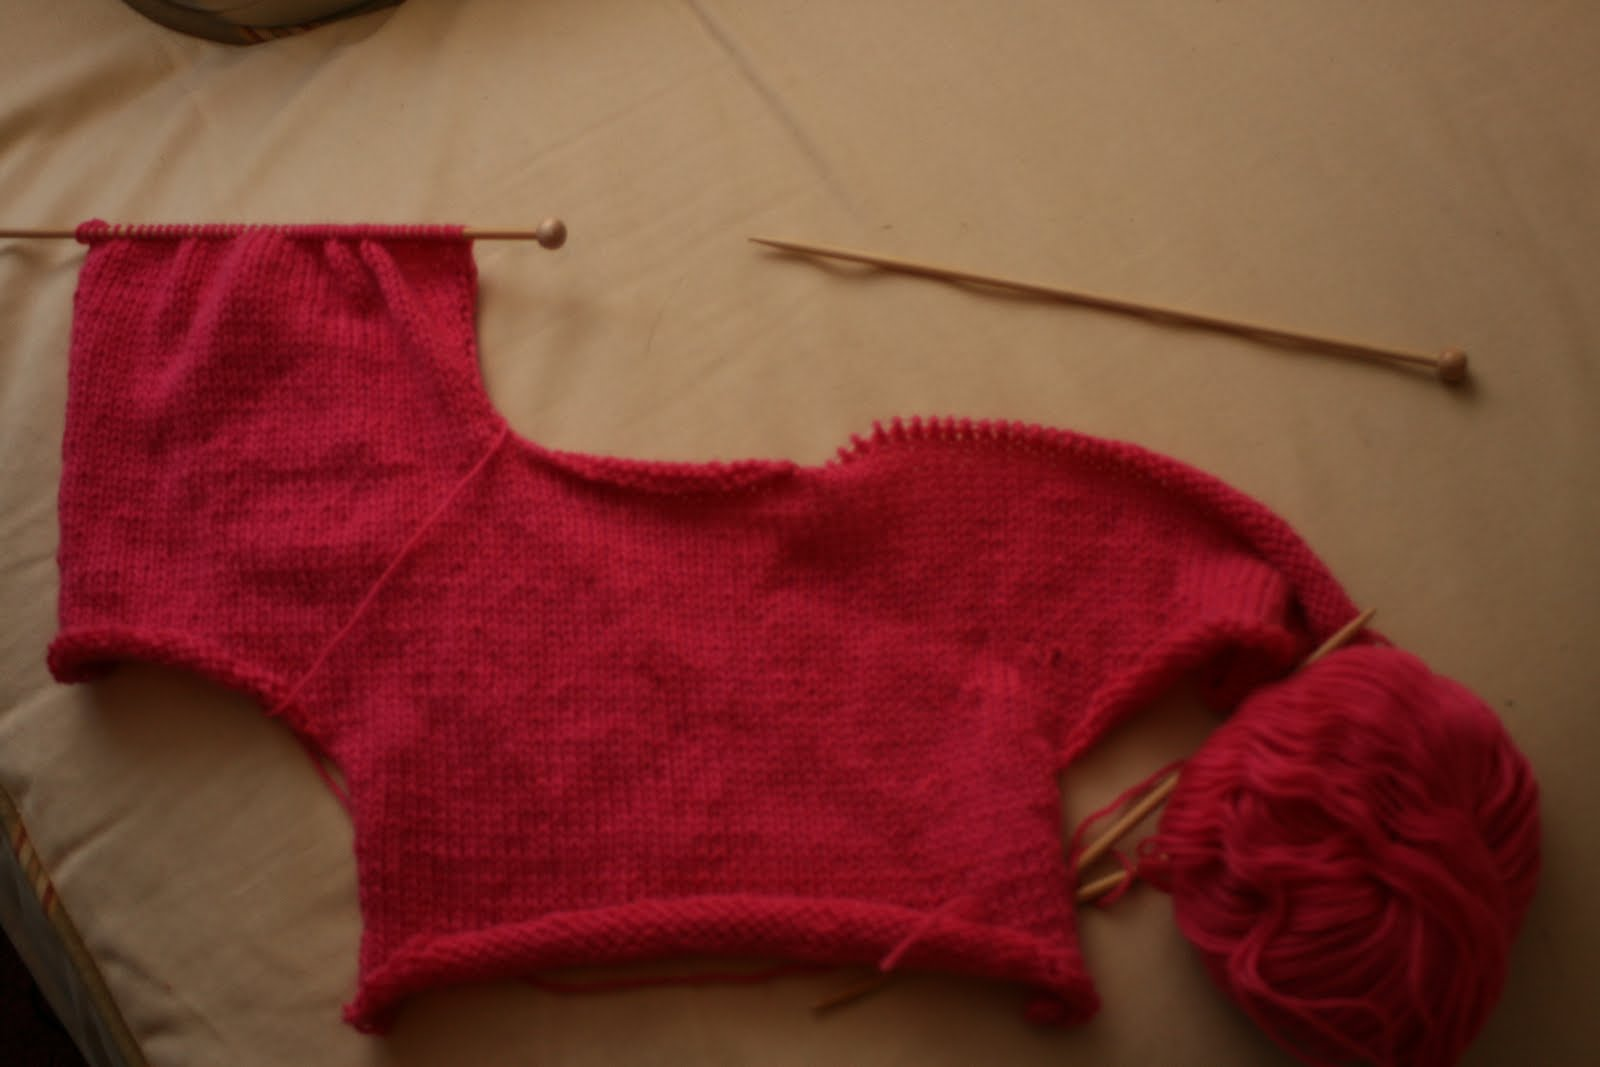 making a baby shrug to go over it since it will be cold no matter